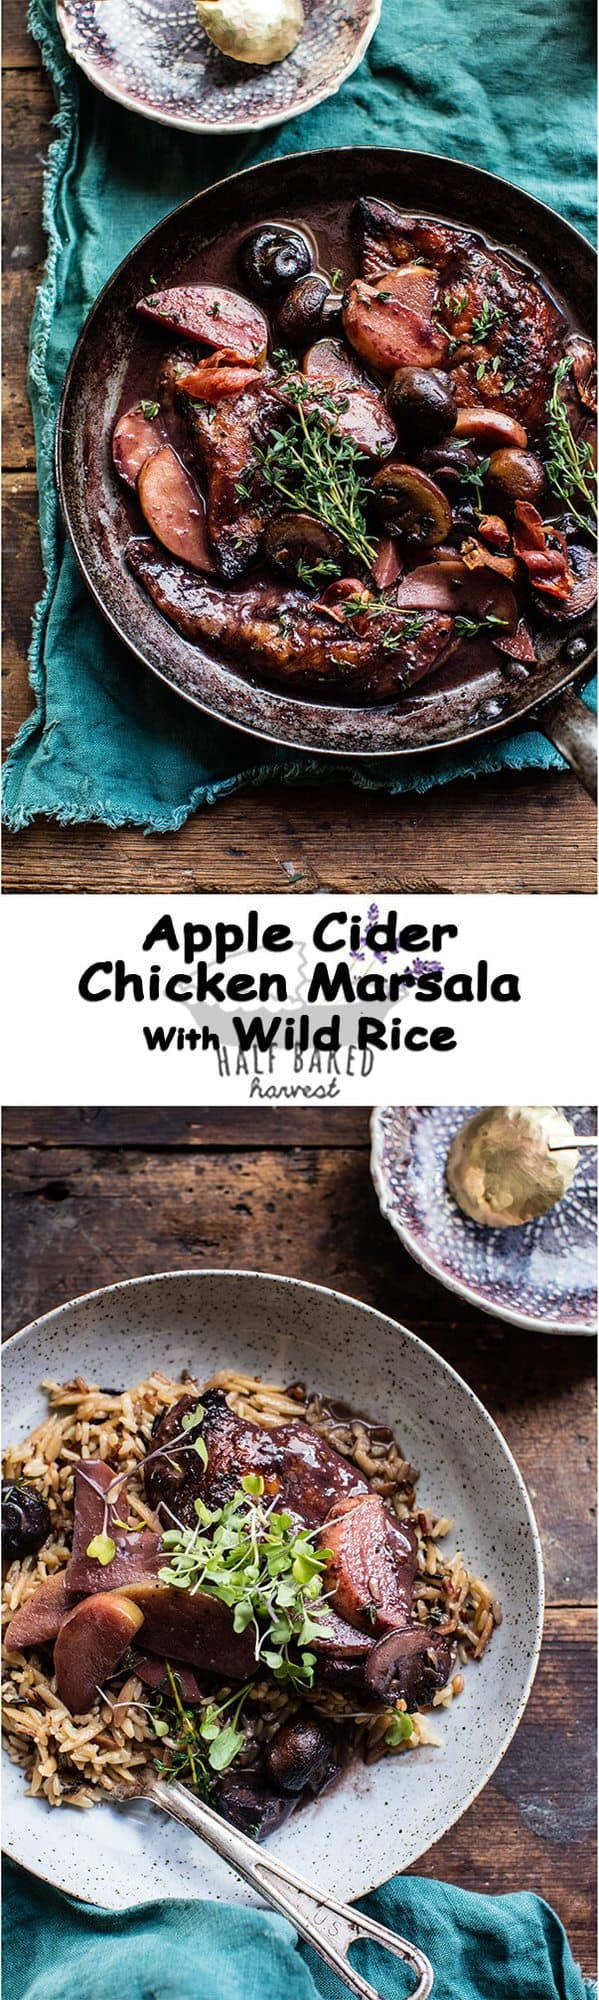 Apple Cider Chicken Marsala with Wild Rice Pilaf | halfbakedharvest.com @hbharvest